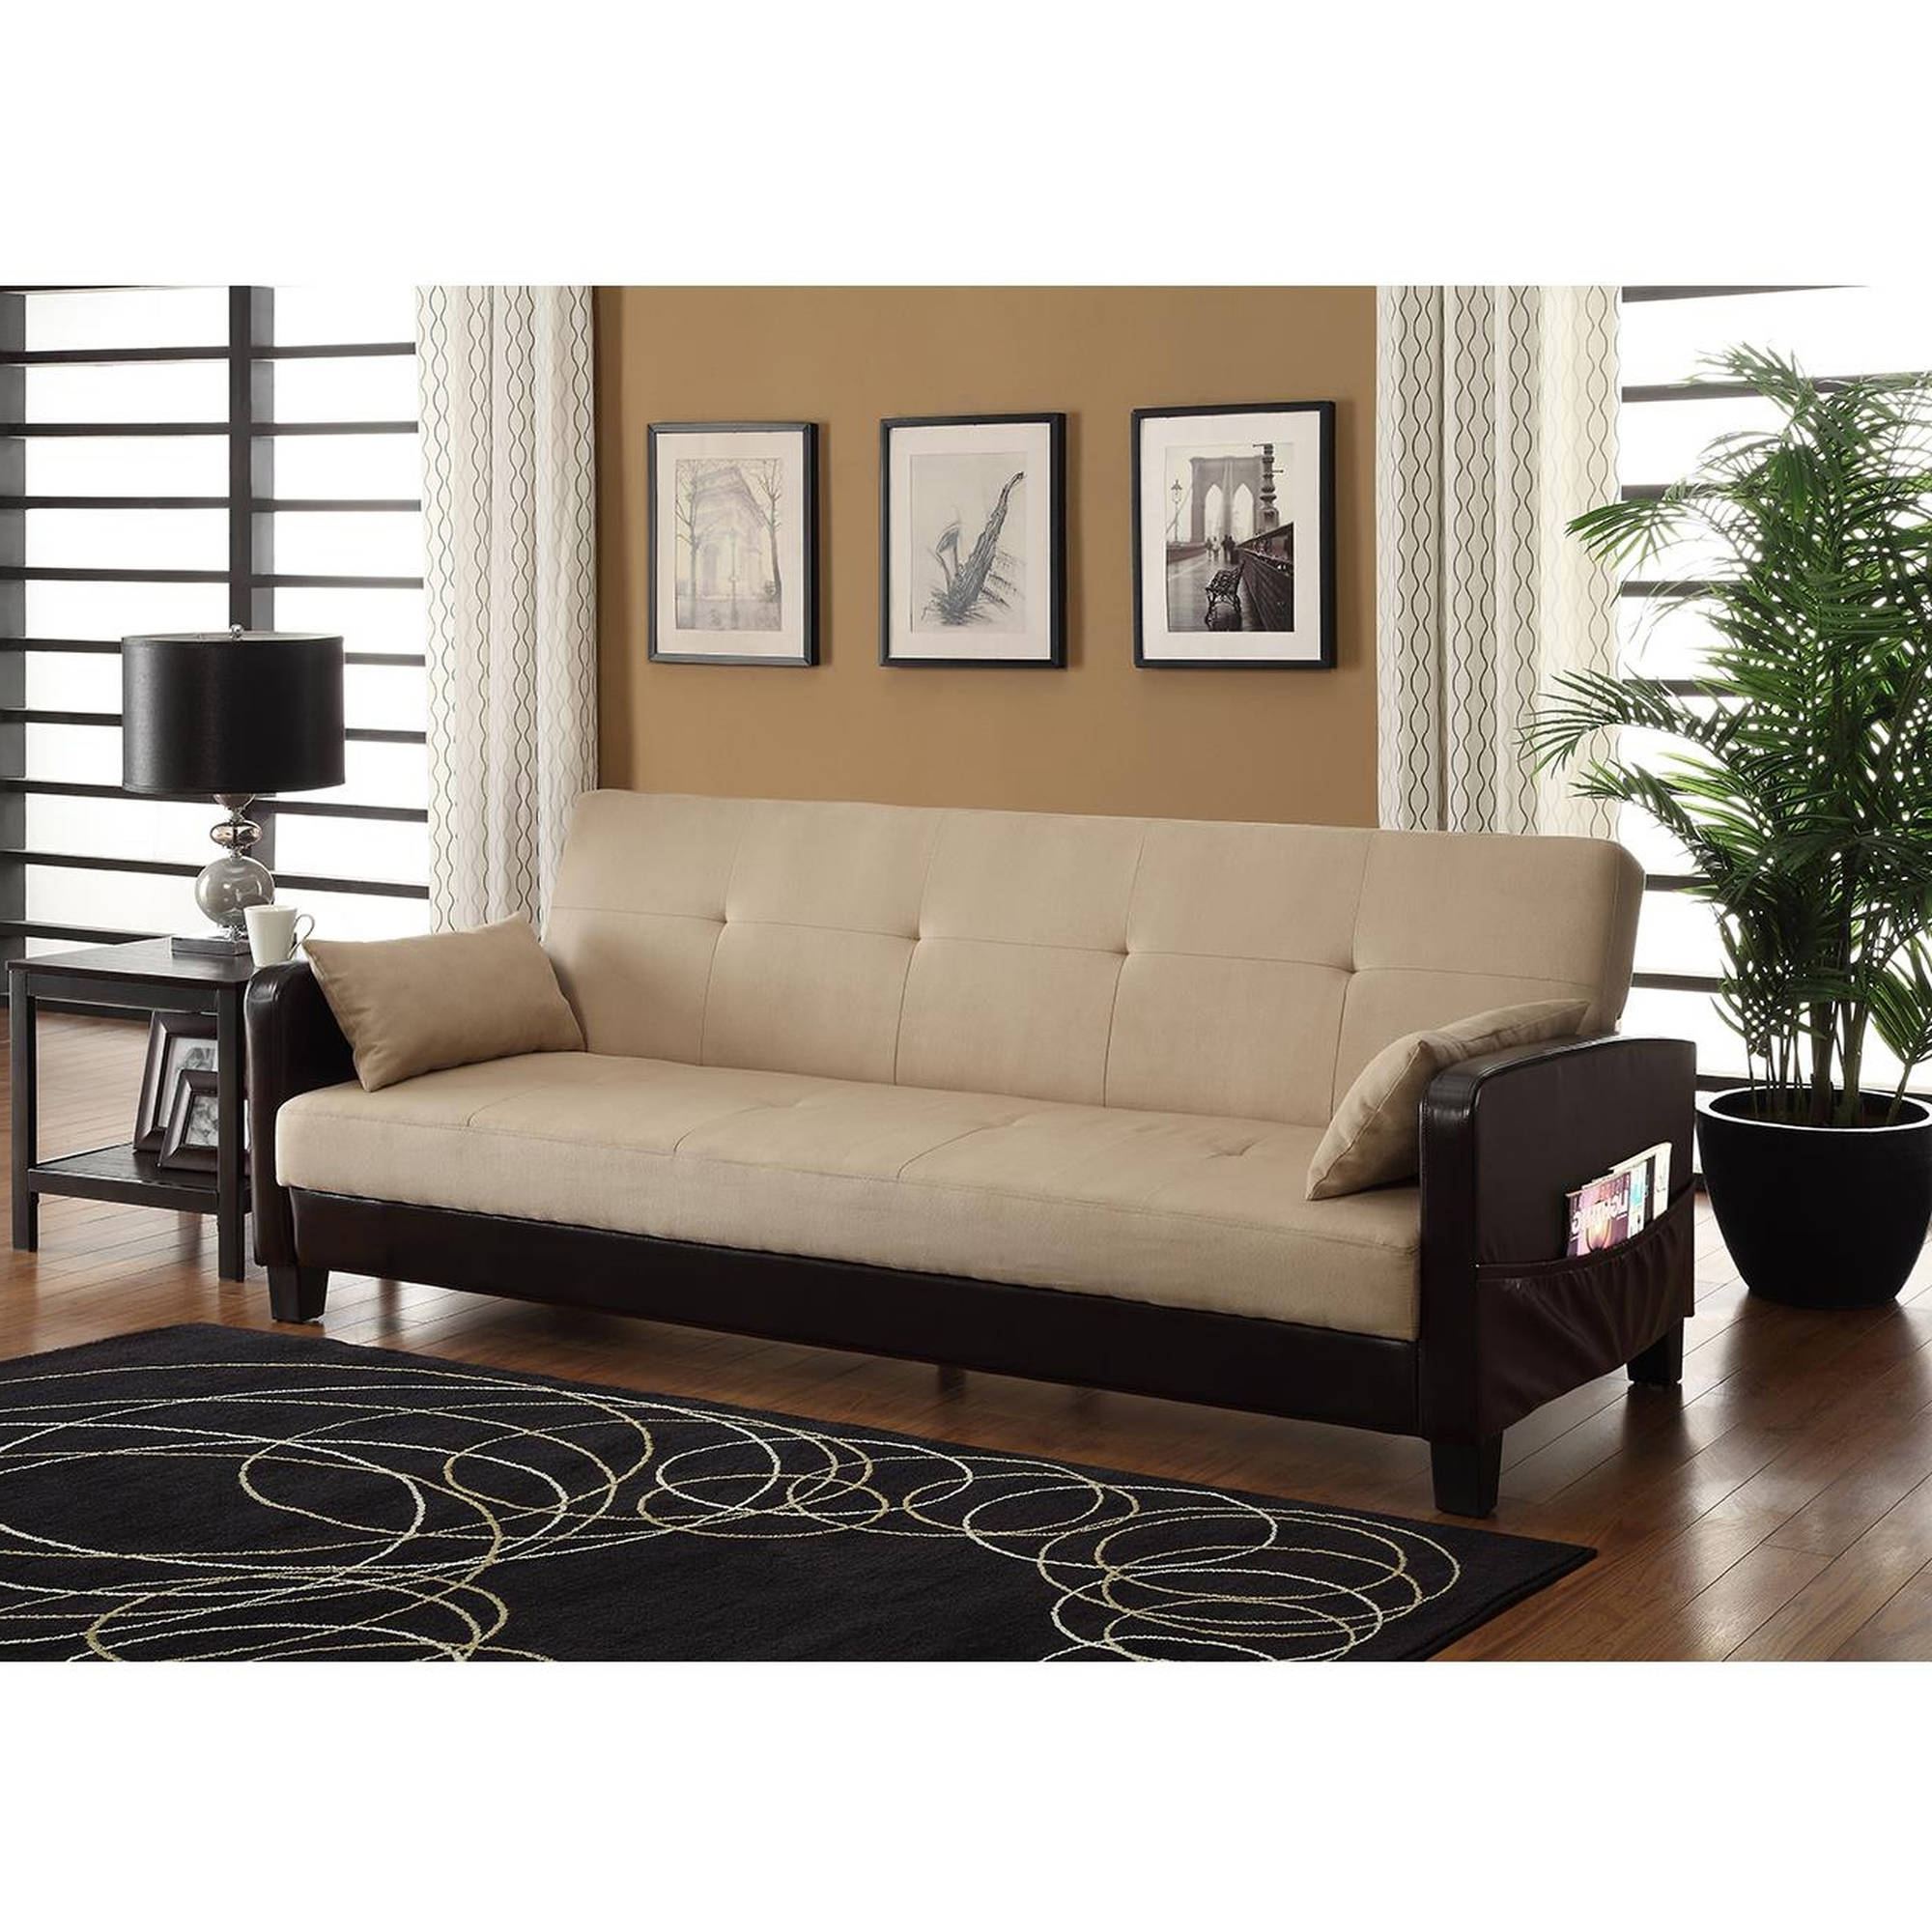 Queens Ny Sectional Sofas With Widely Used Sectional Sleeper Sofas (Gallery 10 of 15)